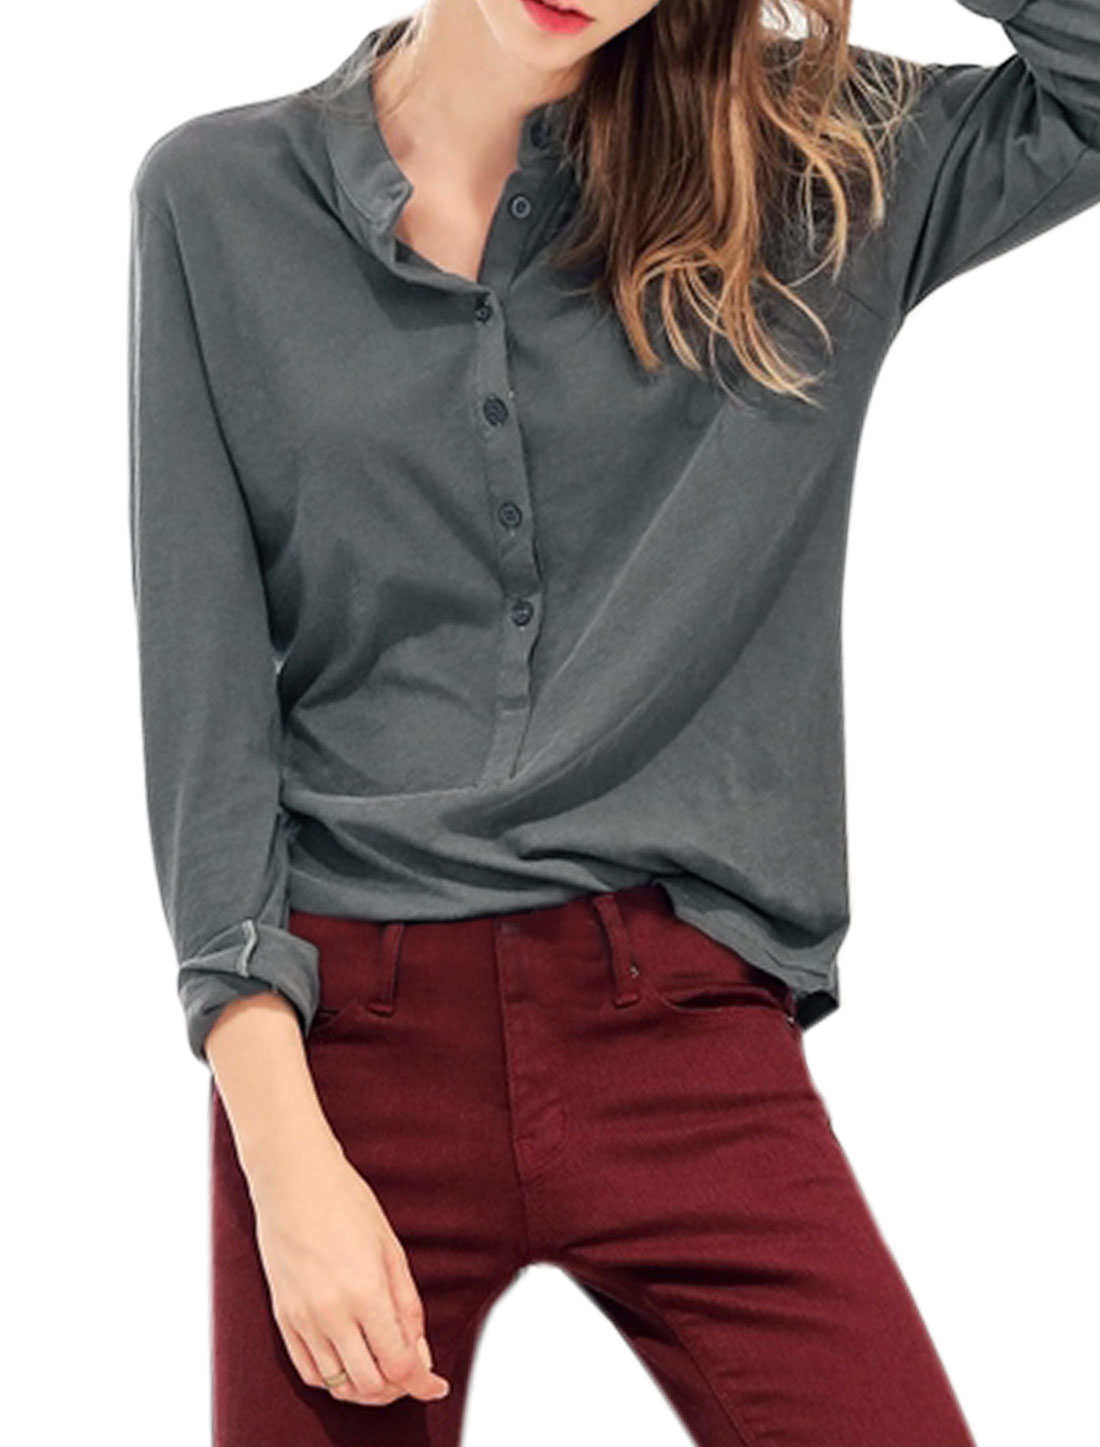 Ladies Collared Long Sleeves Half Button Closure Top Gray XS